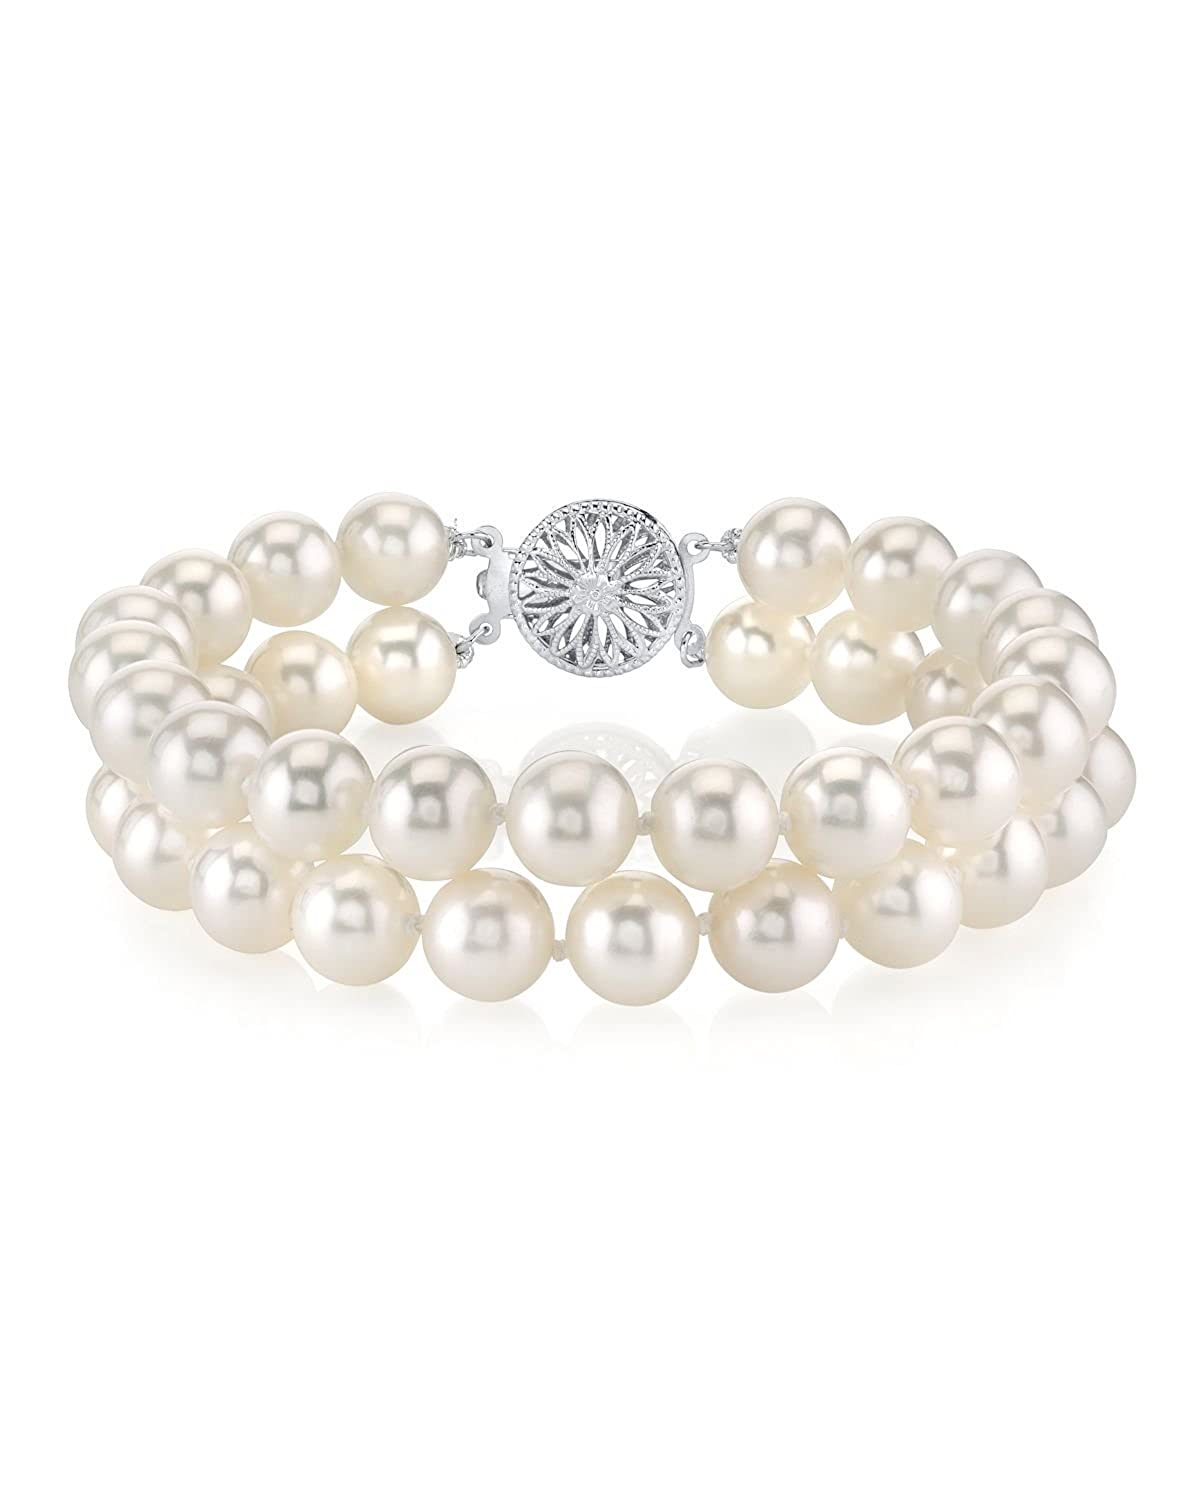 14K Gold White Freshwater Cultured Pearl Double Bracelet – AAA Quality